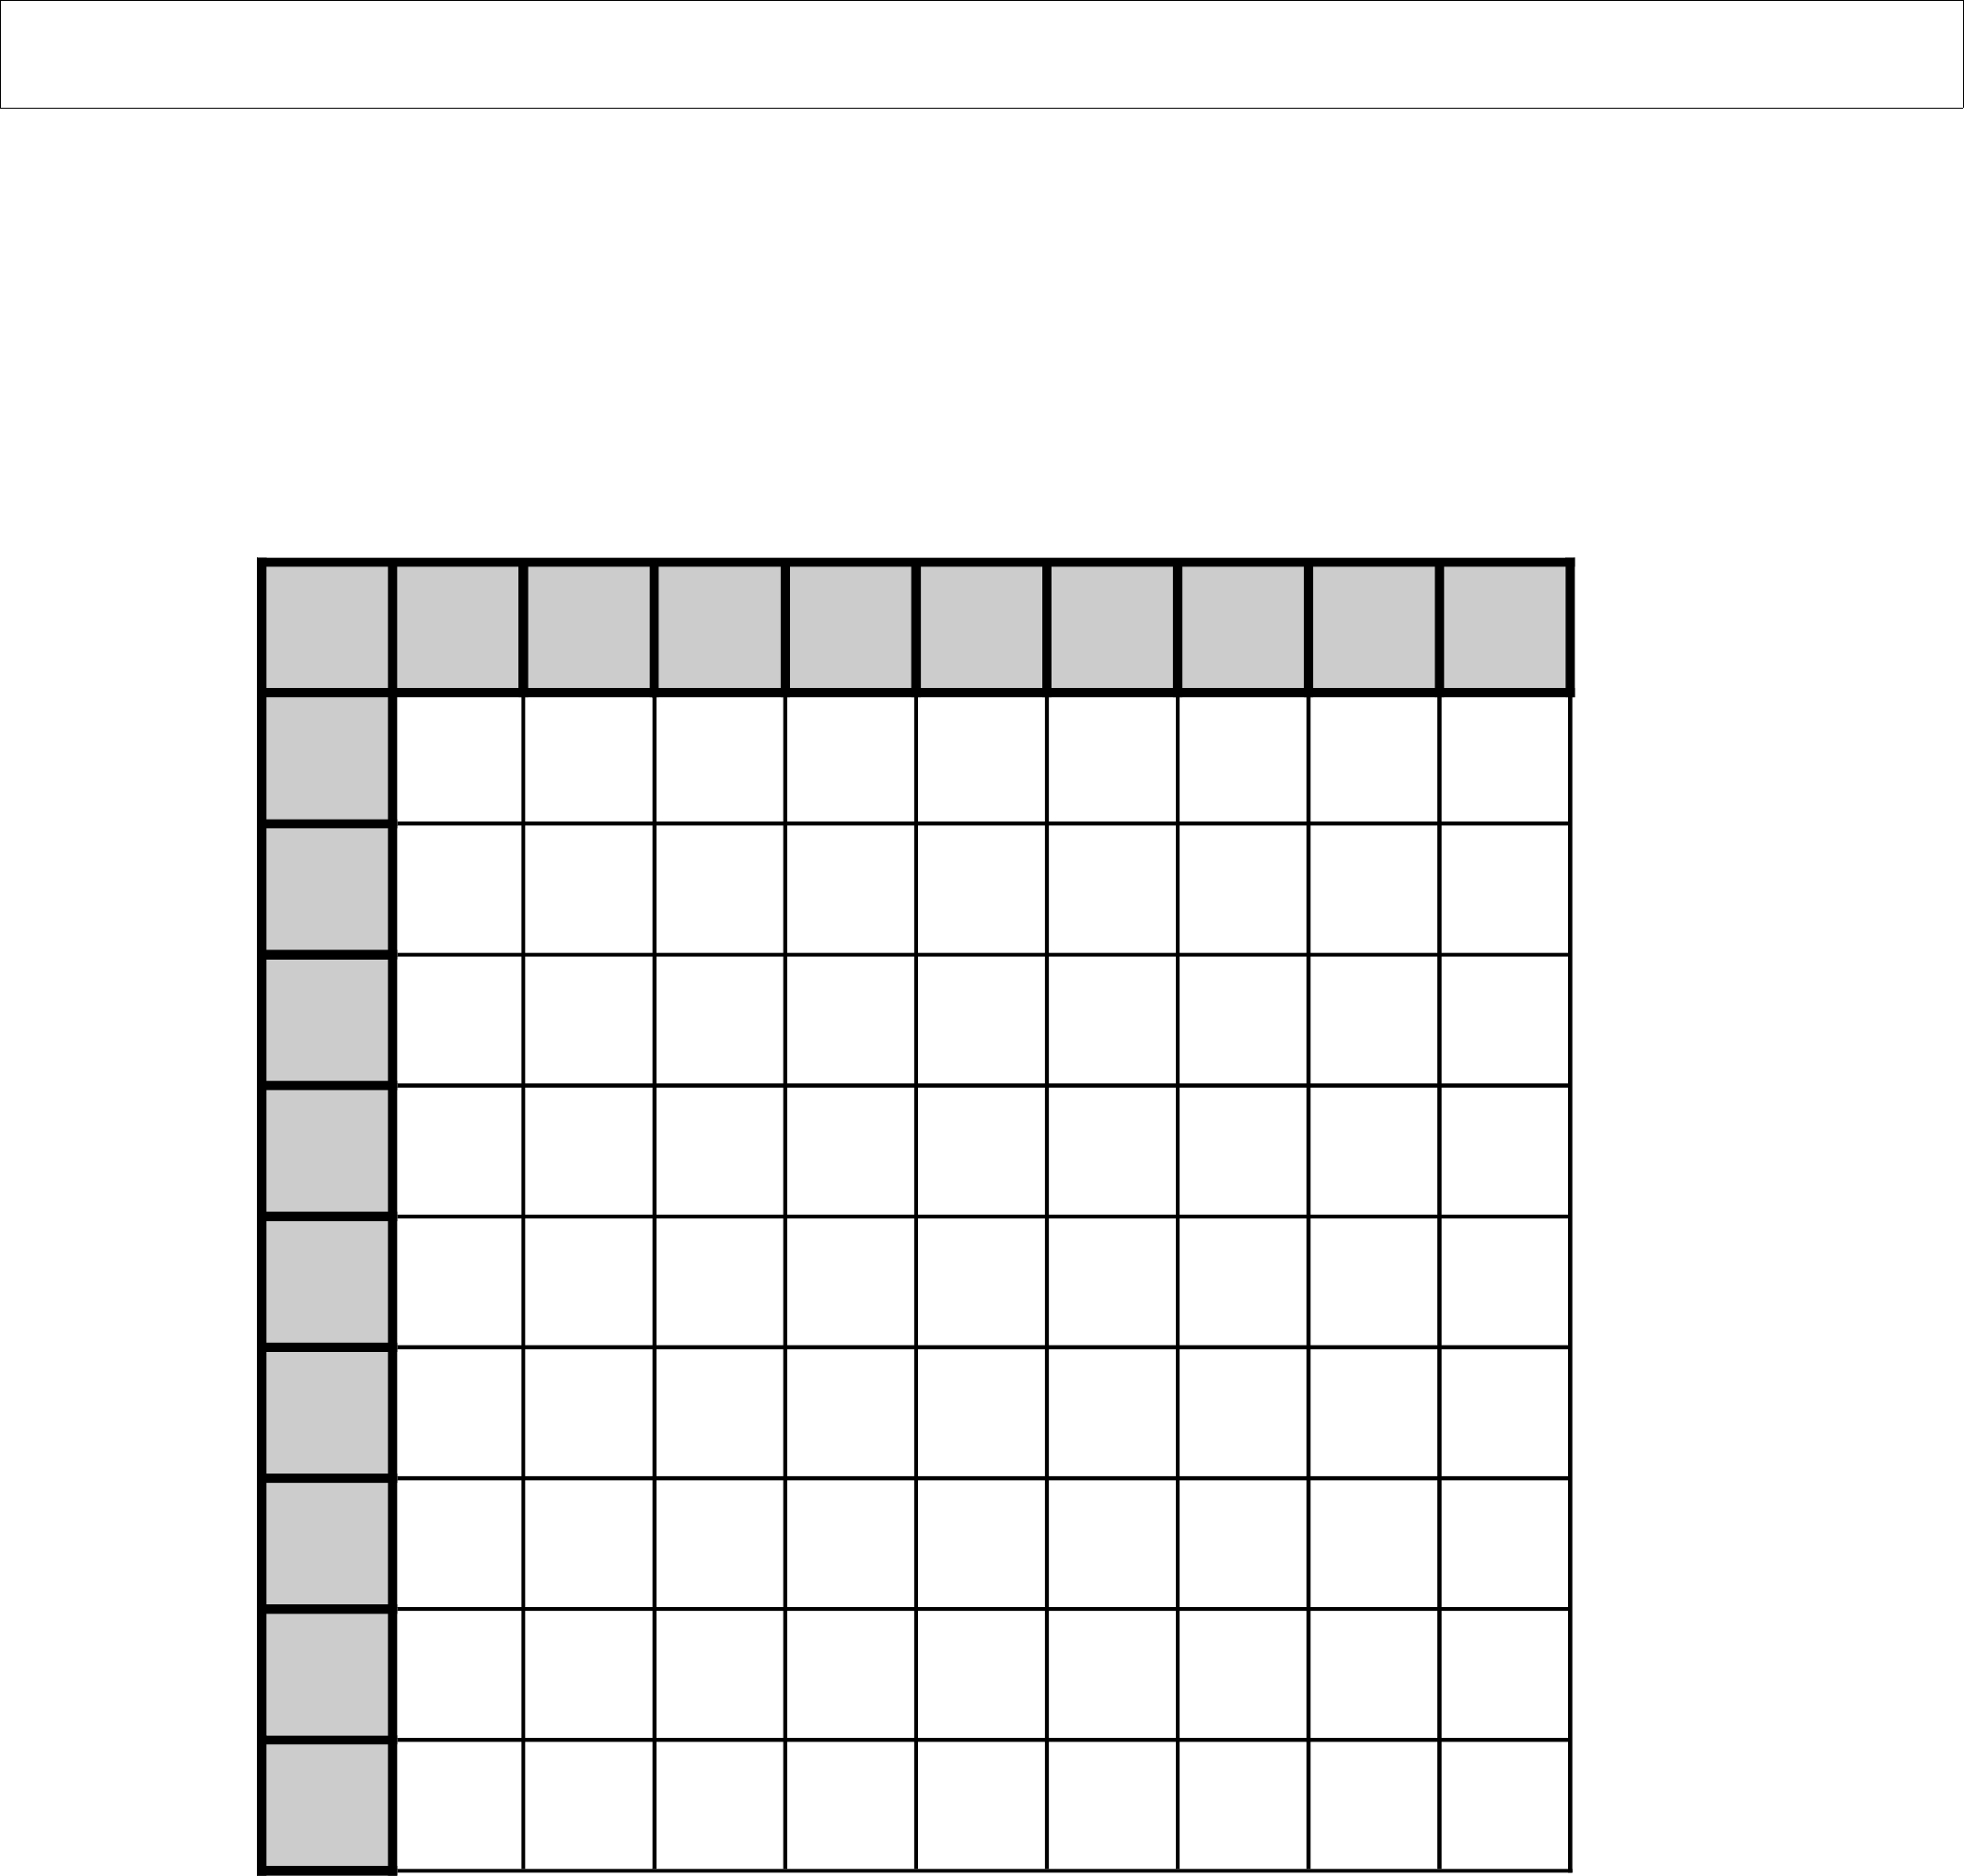 Print Out The Grade School Multiplication Table Up To